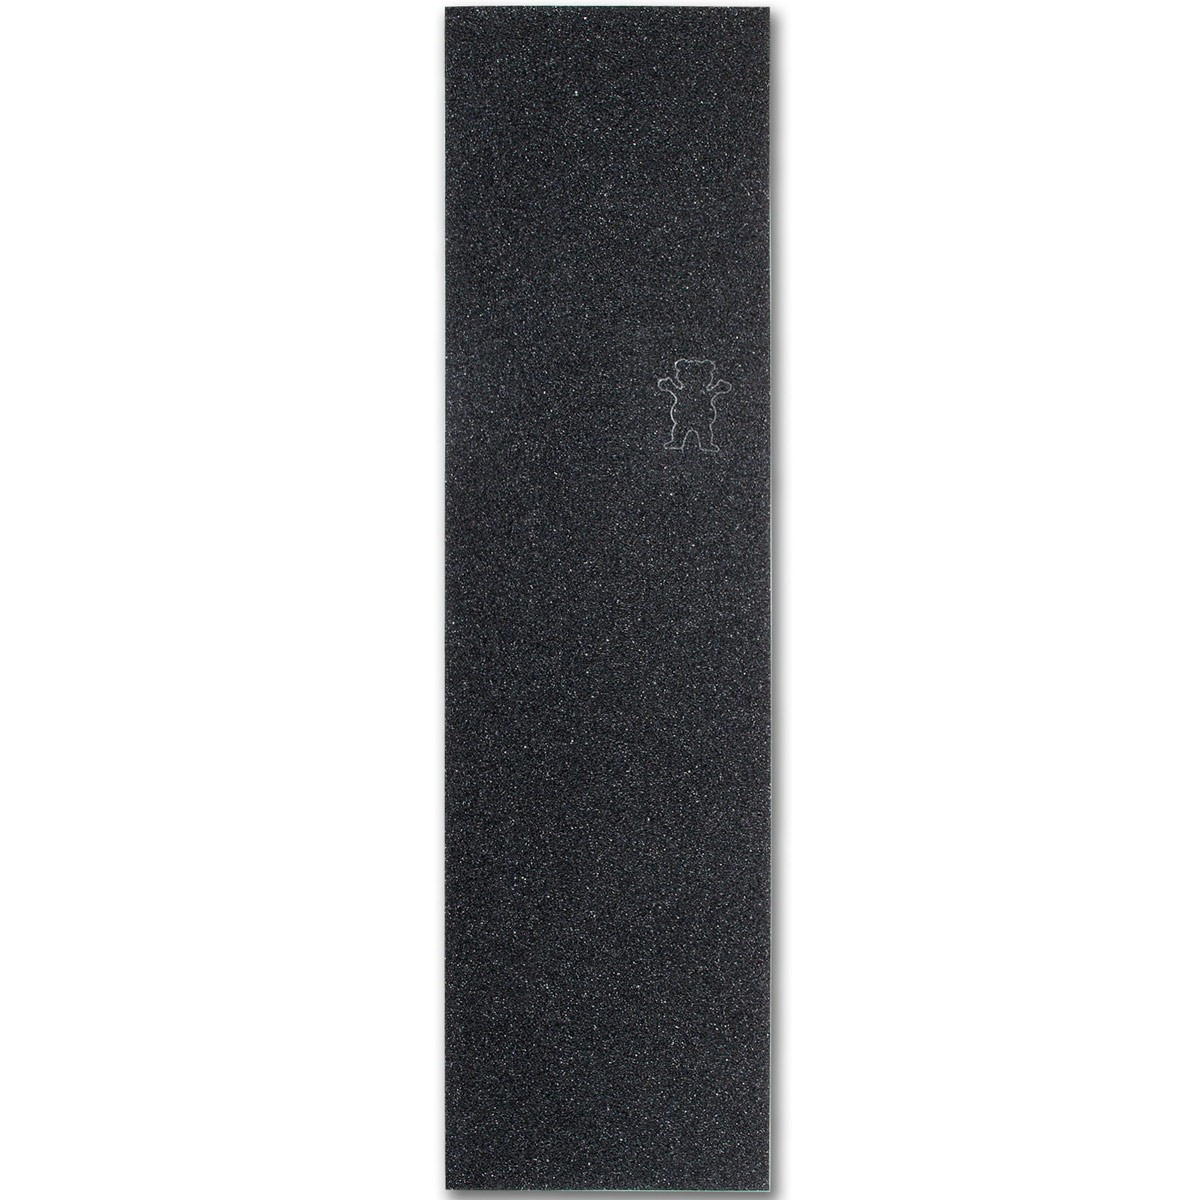 Grizzly Bear Cut-Out Skateboard Griptape - Regular